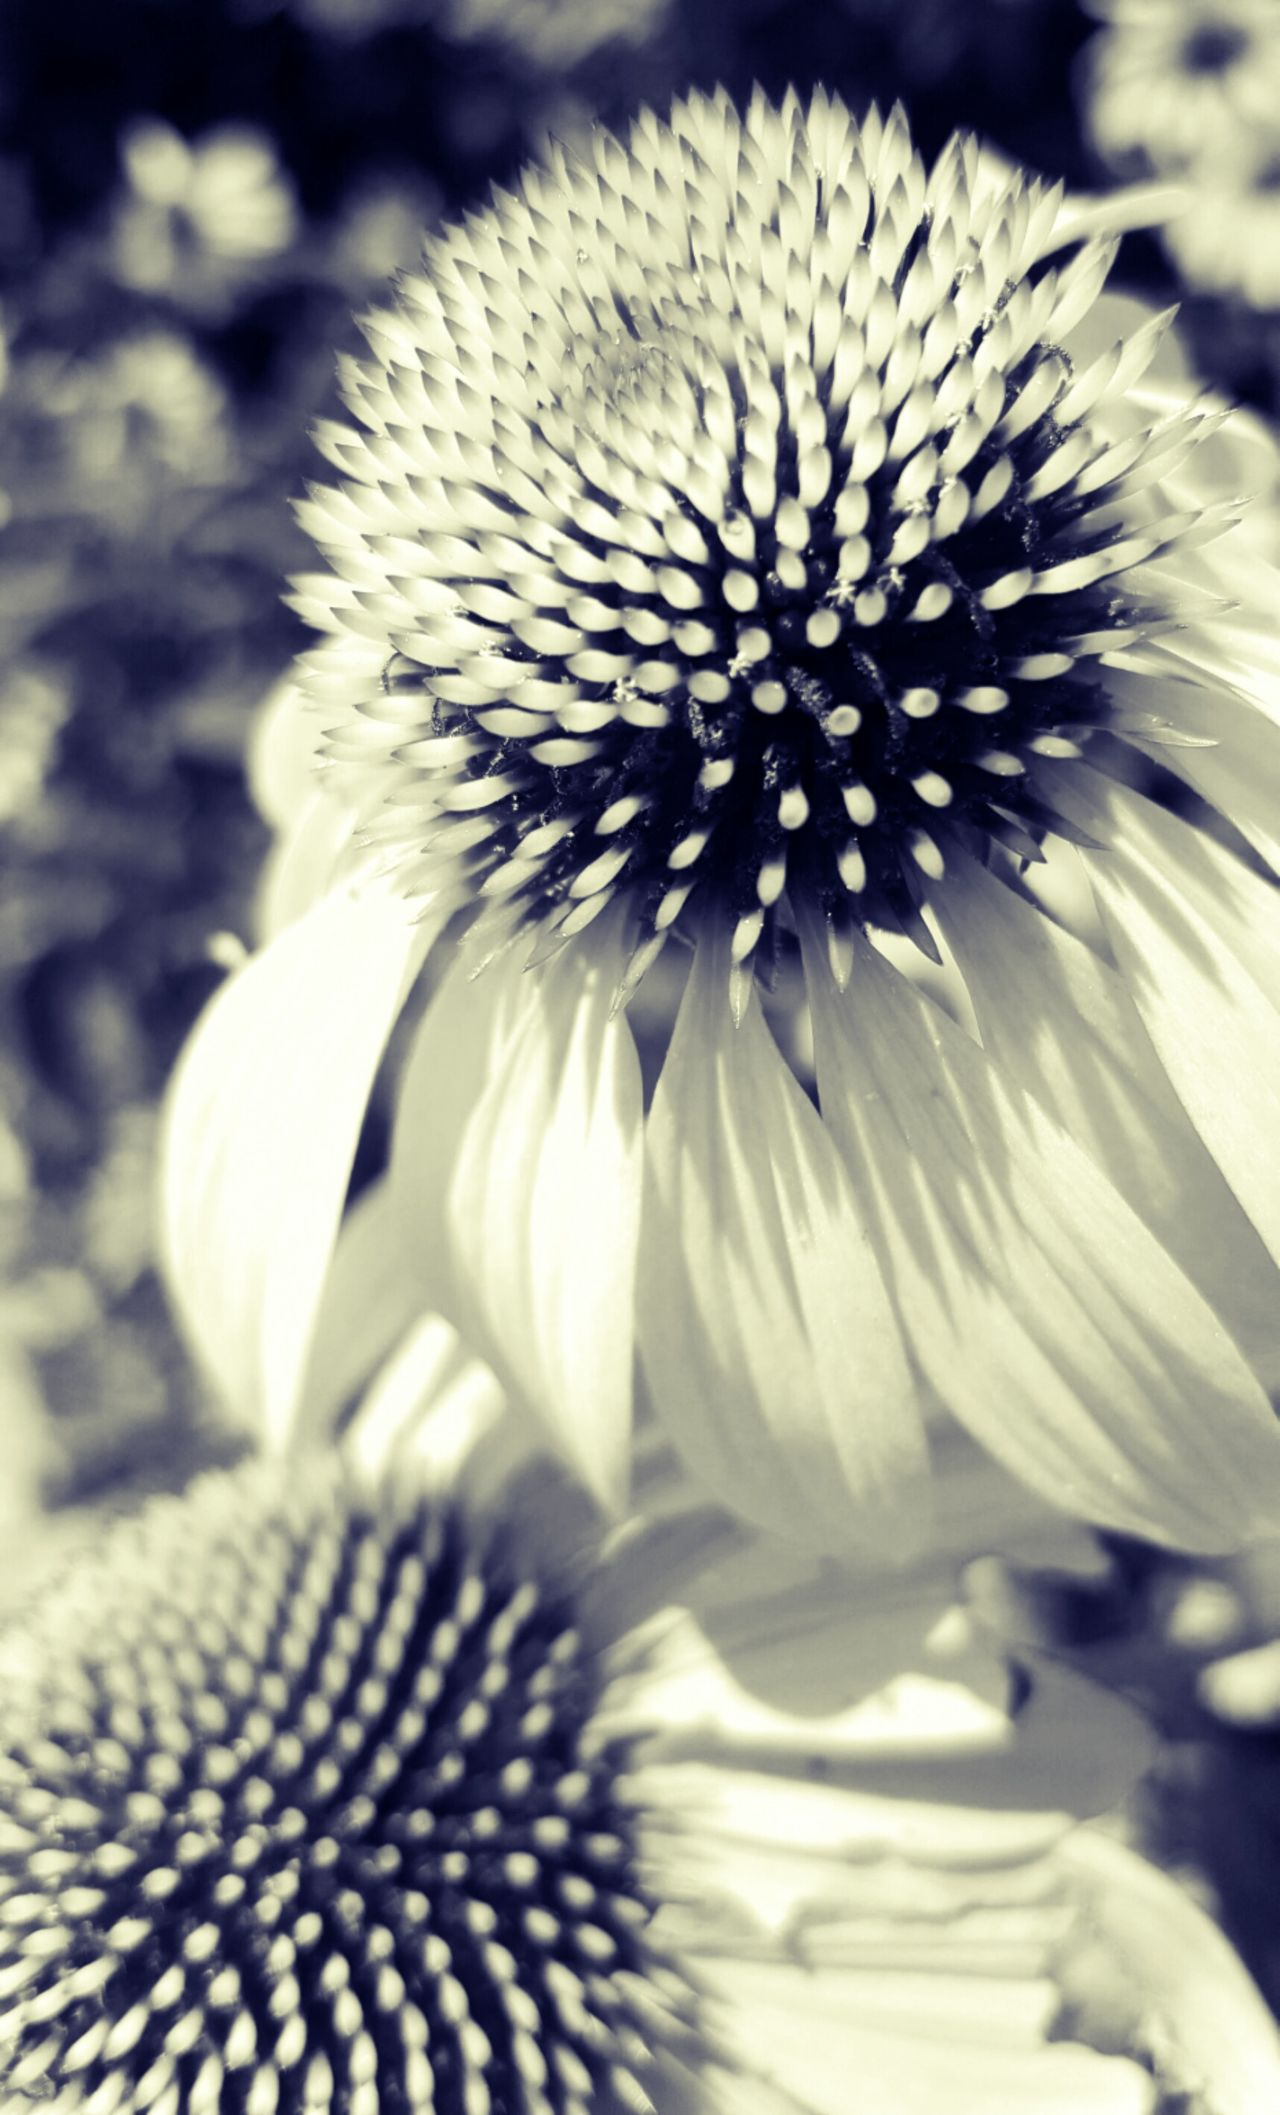 Wildflower Field Wildflower Garden Wildflower Wildflowers Of Eyeem Wildflowers Bloom Blooms Blossoms  Flowers Flowers, Nature And Beauty Flower Collection Garden Photography Michigan Flowers Wildflower Meadow Wildflowers In Bloom Cone Flower Echinacea Plant Life Wildflower Photography Wildflowers Michigan Nature_perfection Nature Photography Blackandwhite Photography Black And White Flower Collection Black And White Flower